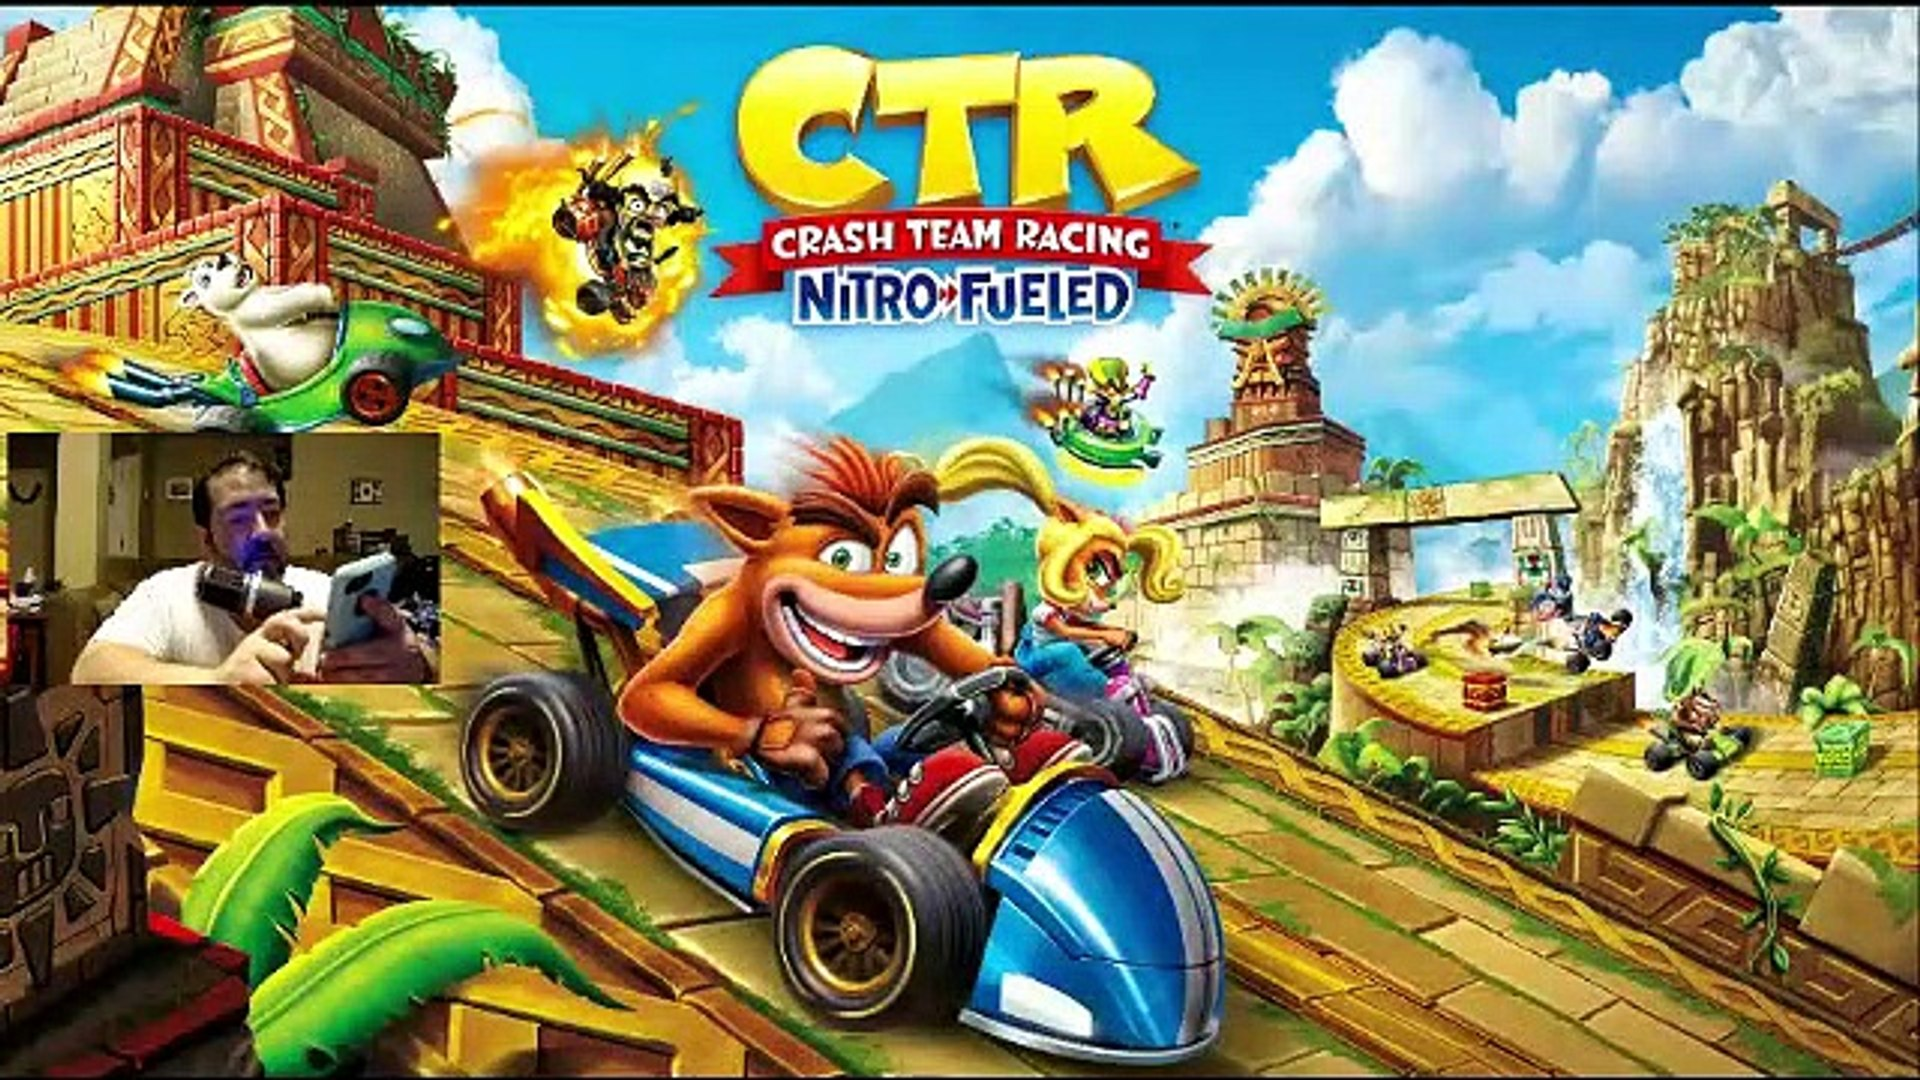 Crash Team Racing Nitro Fueled Episode 1 Video Dailymotion